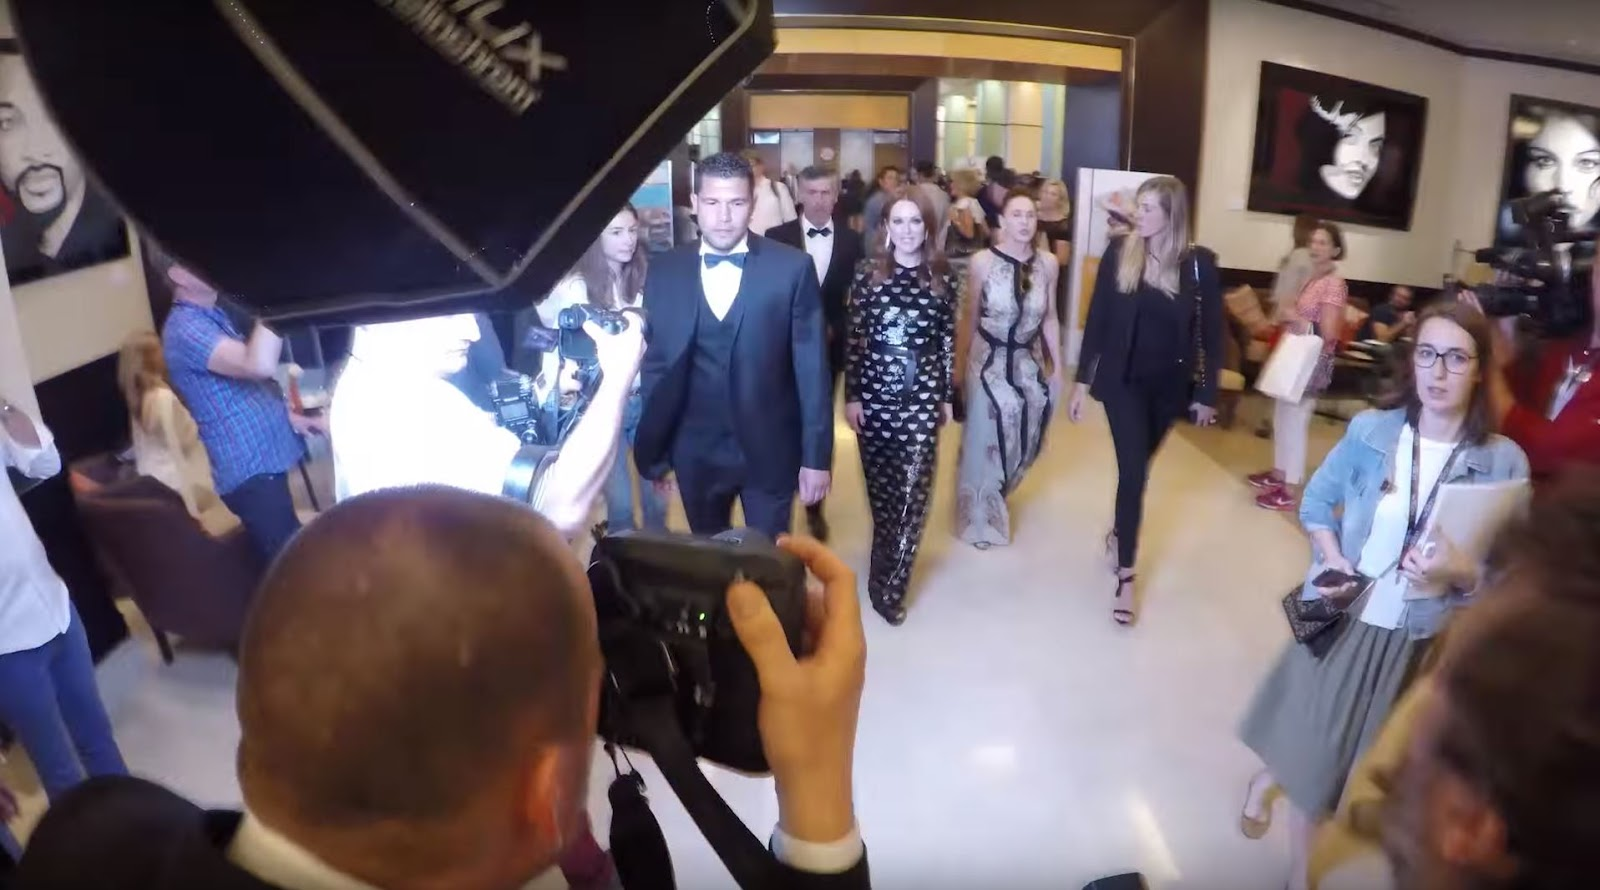 Behind the Scenes with L'Oreal Ambassadors Gareth Cattermole